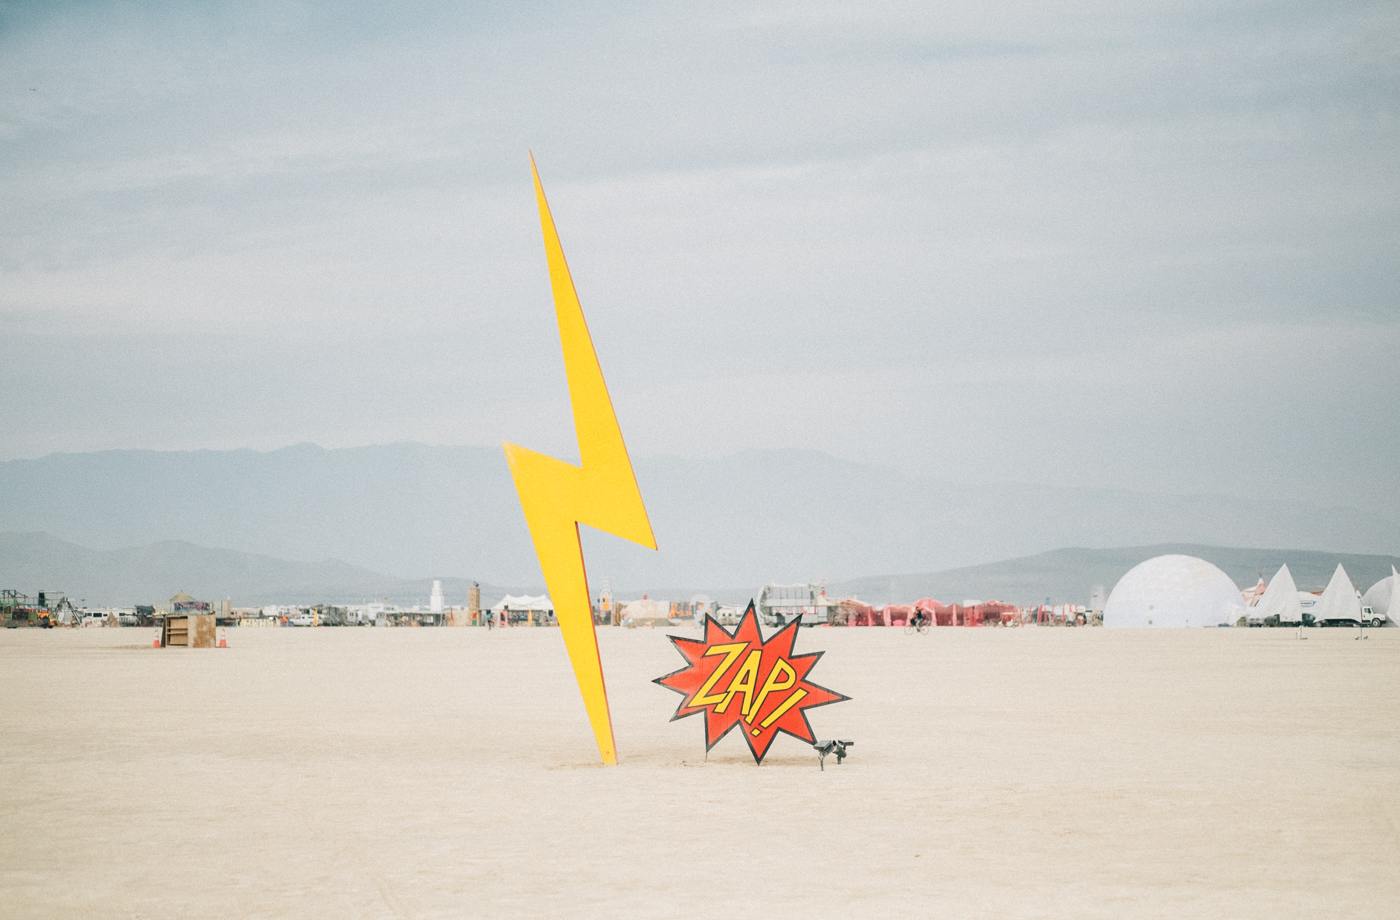 Burning Man ZAP